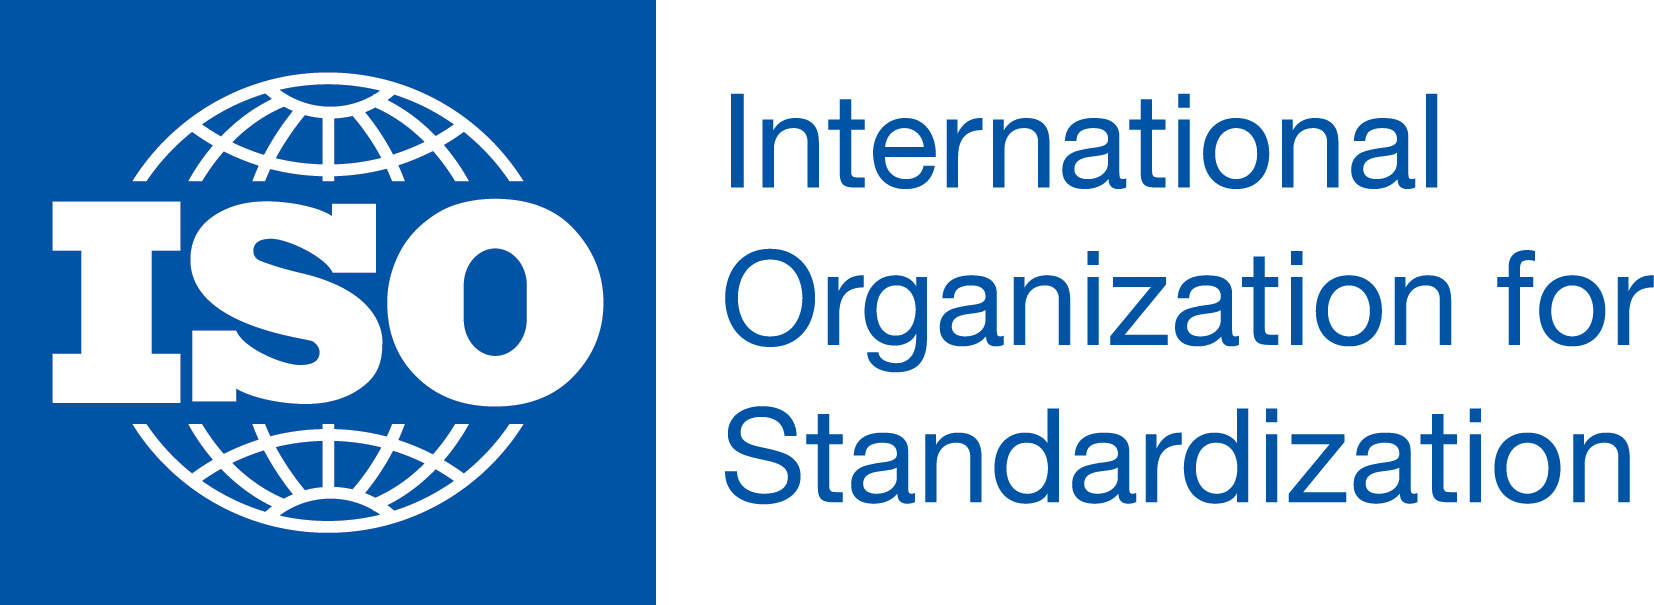 ISO International Organizational Standardization